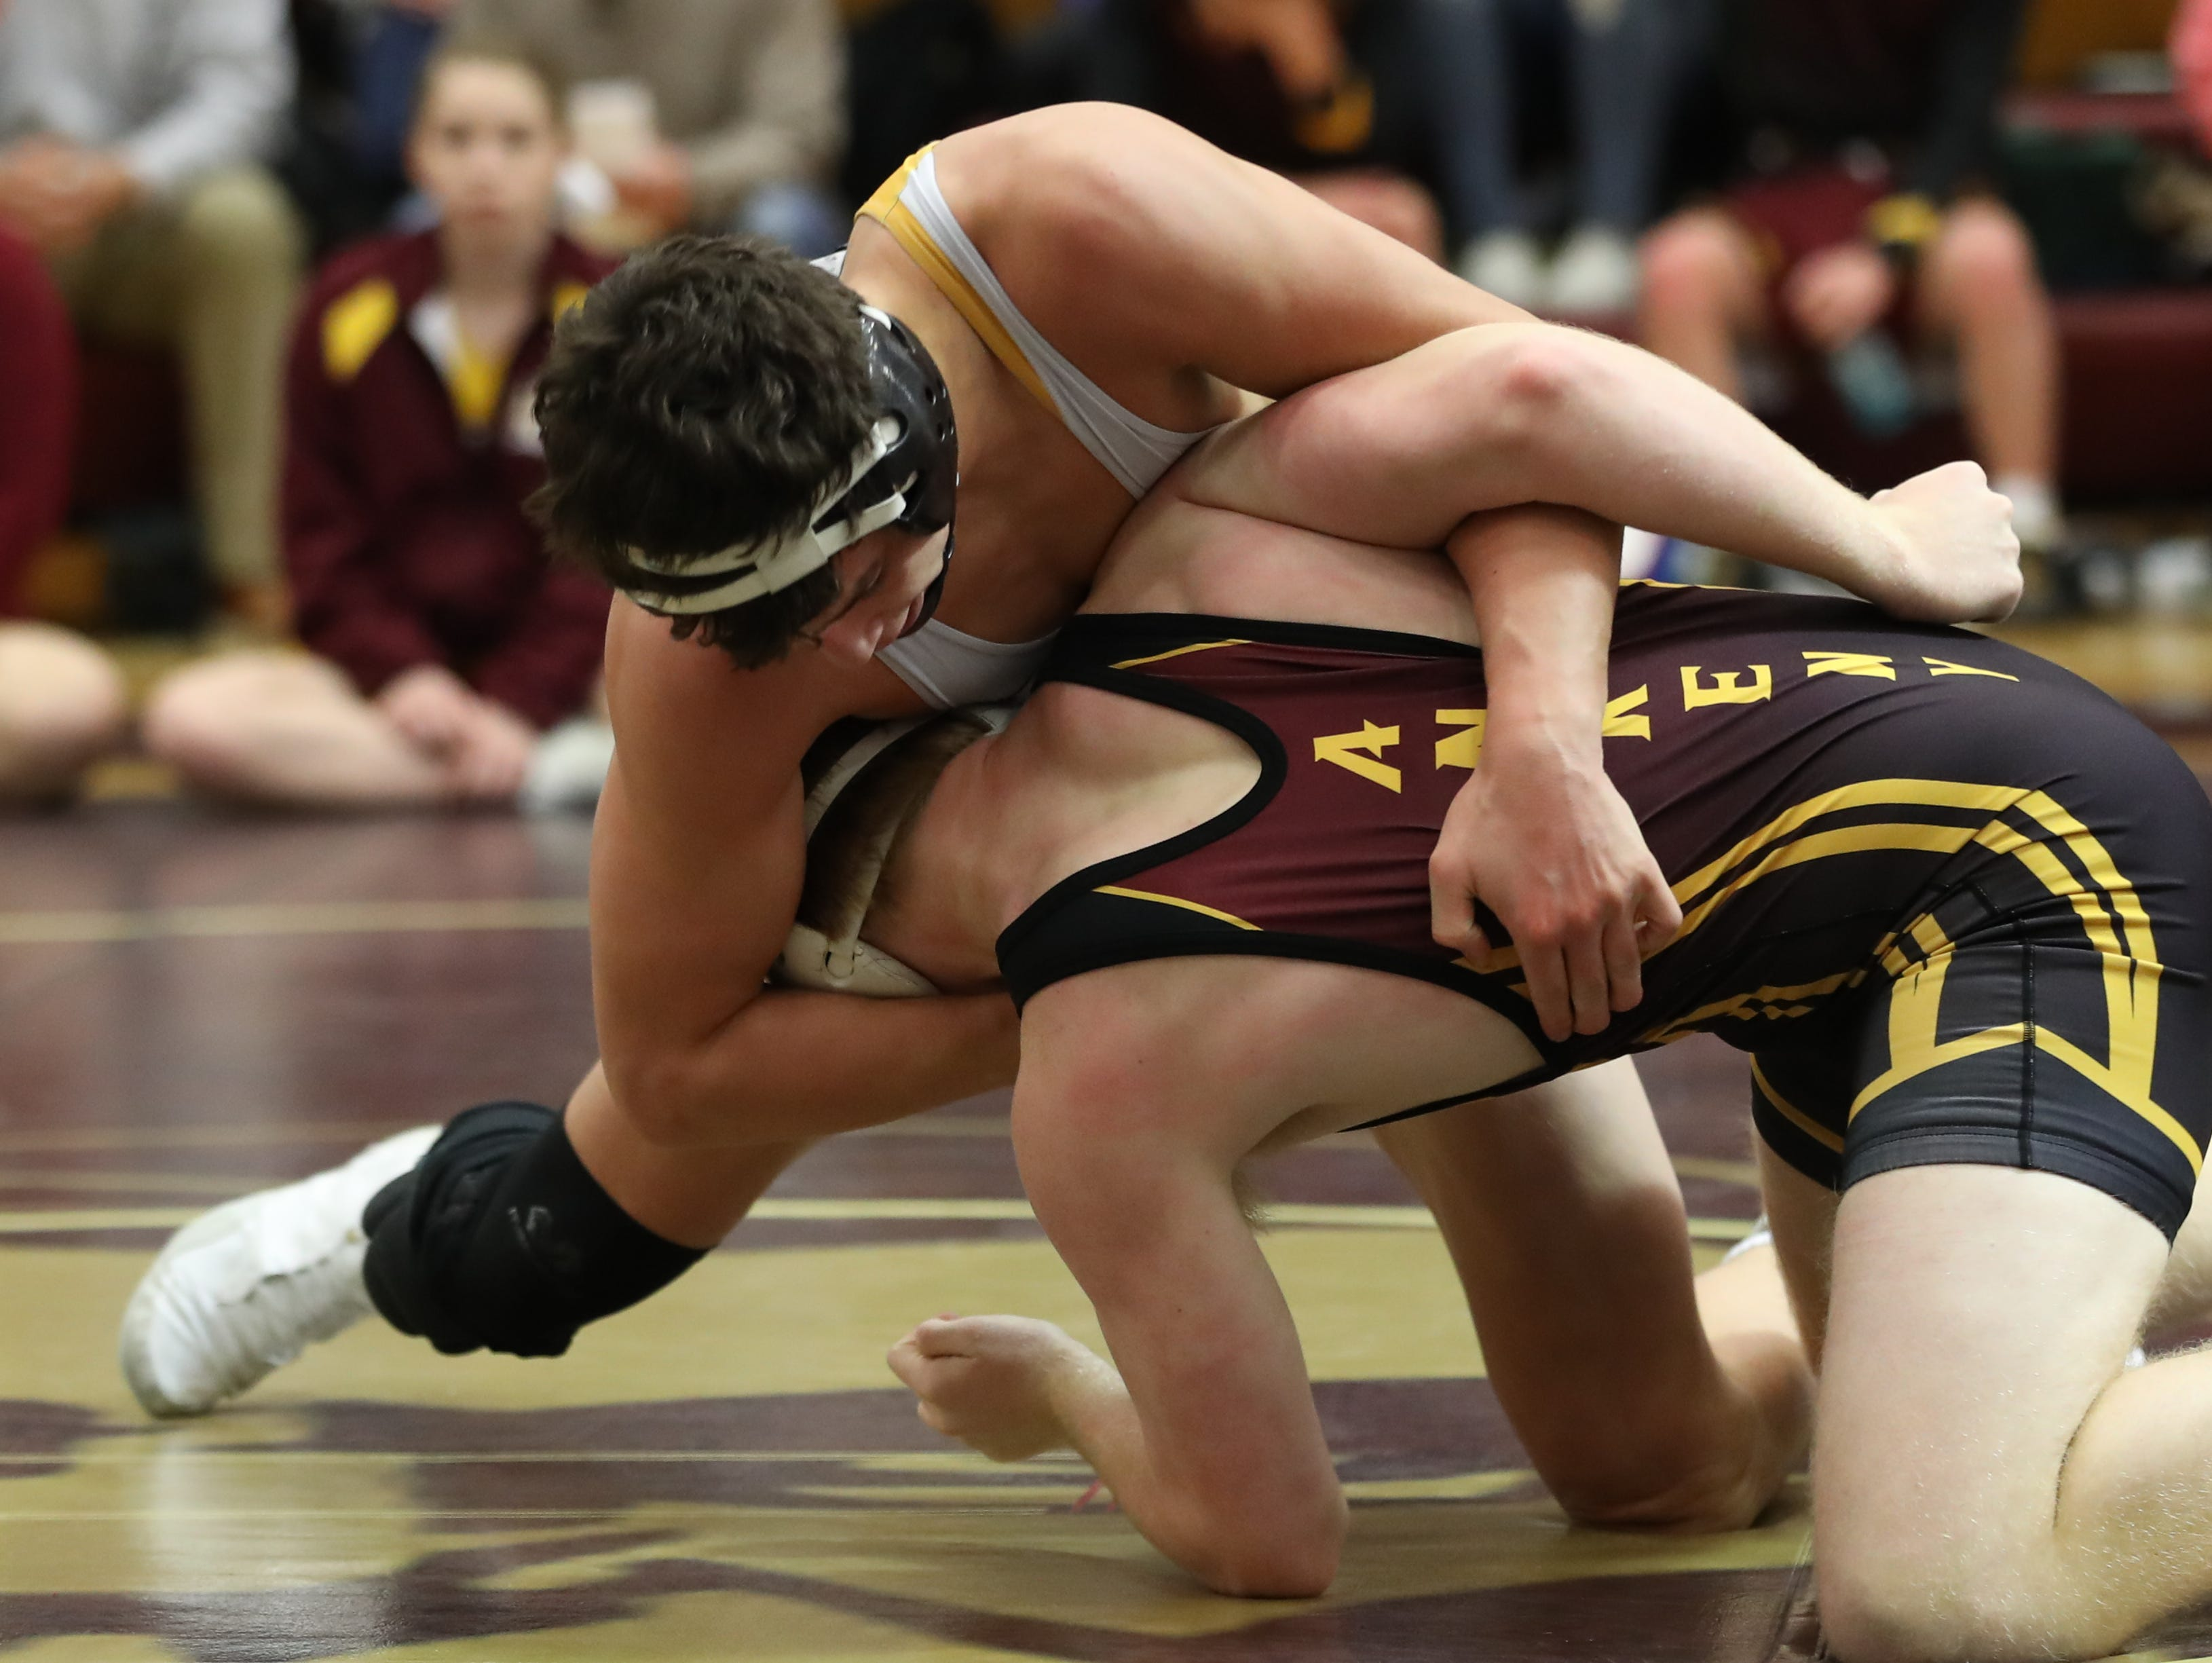 Dec. 4, 2018; Des Moines, IA  USA; Cade DeVos (Southeast Polk) over Caleb Goldner (Ankeny) (Fall 1:32) at Des Moines Lincoln High School. The Rams beat the Hawks 54-14.